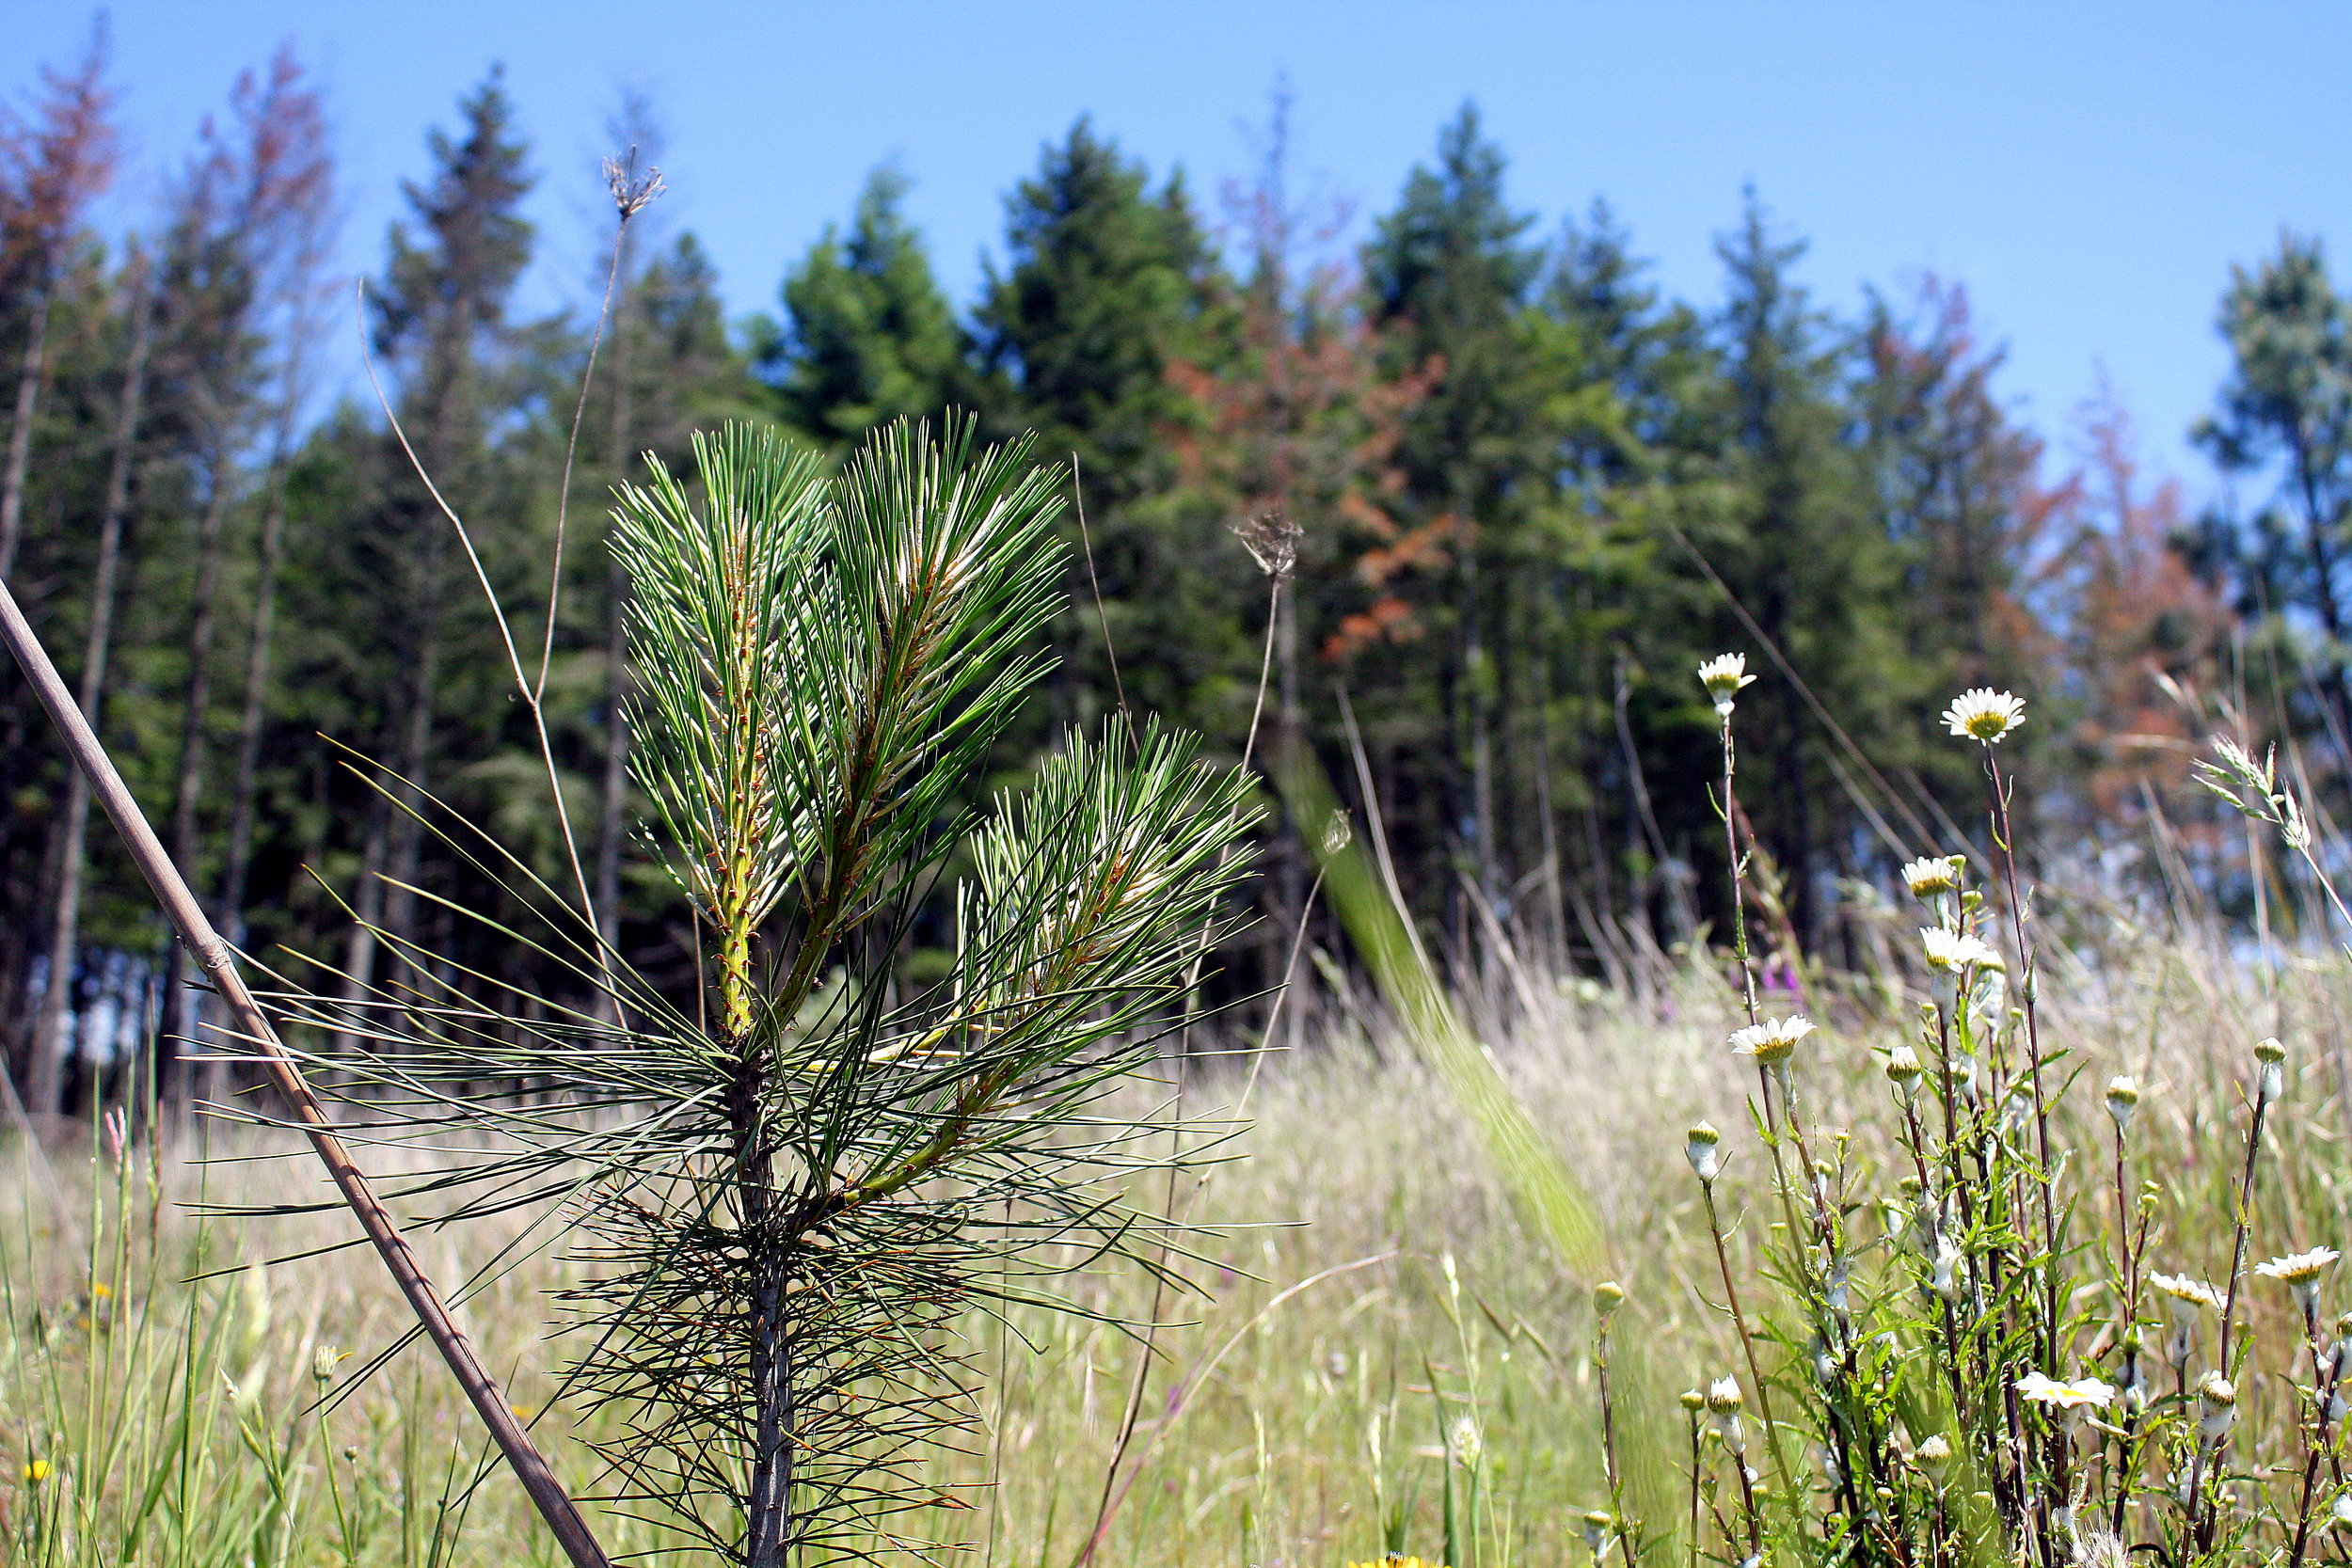 We planted this Ponderosa Pine seedling in an area where Fir has been dying - and continues to fail, as indicated by the trees in the background